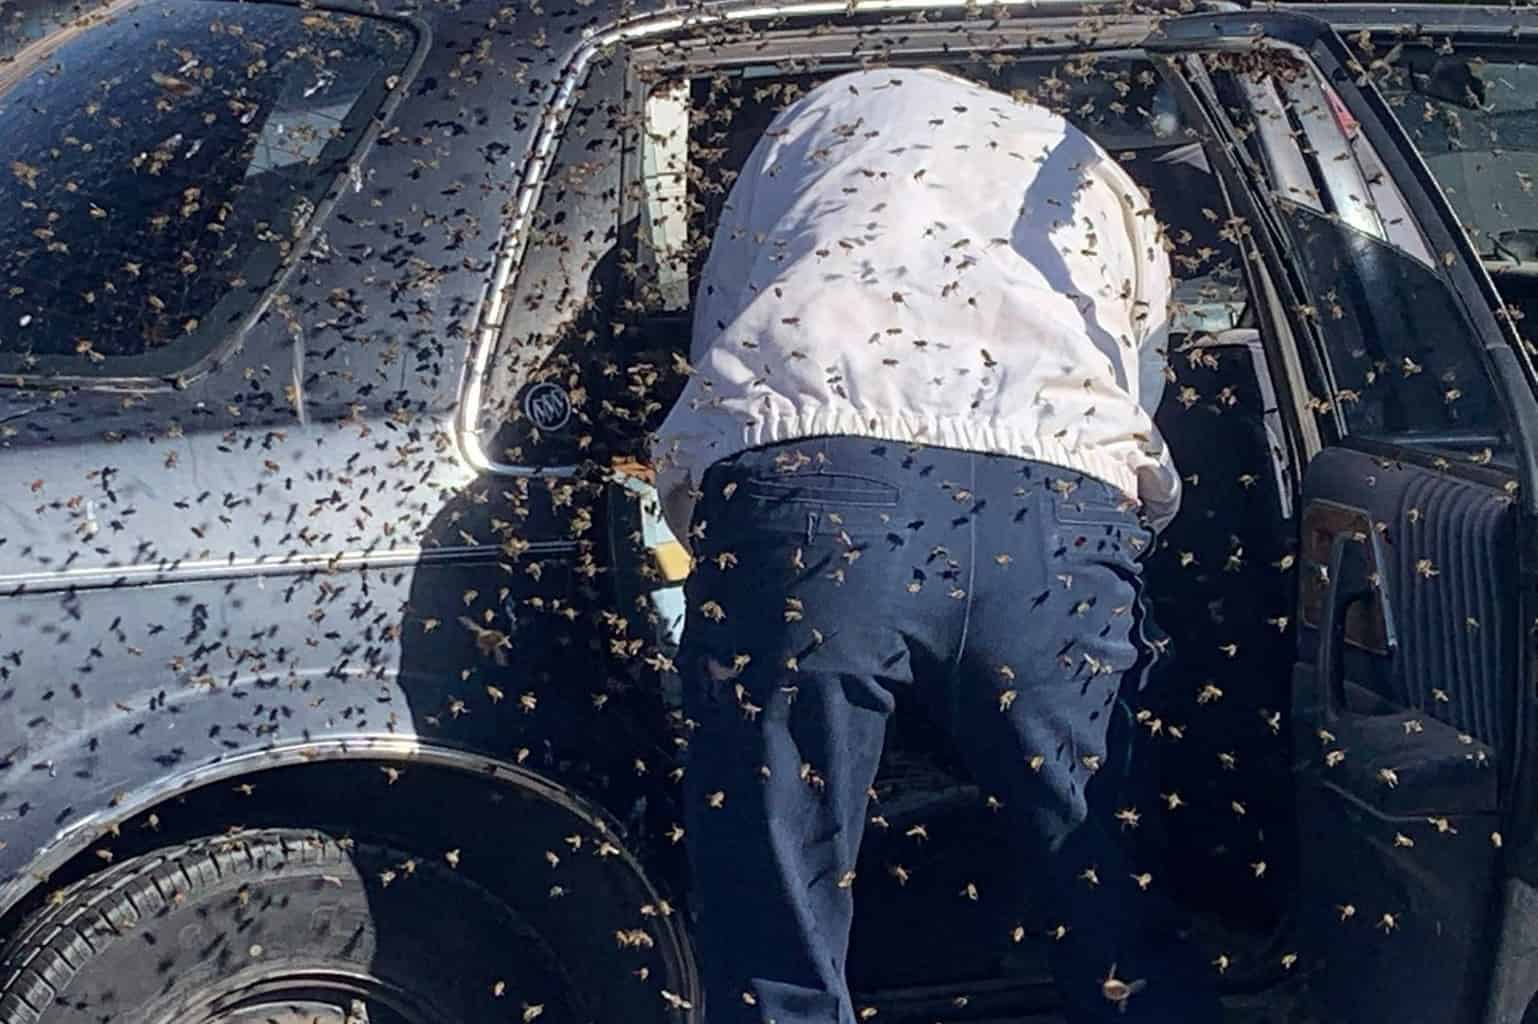 Off duty firefighter braves swarm of bees to rescue man 1